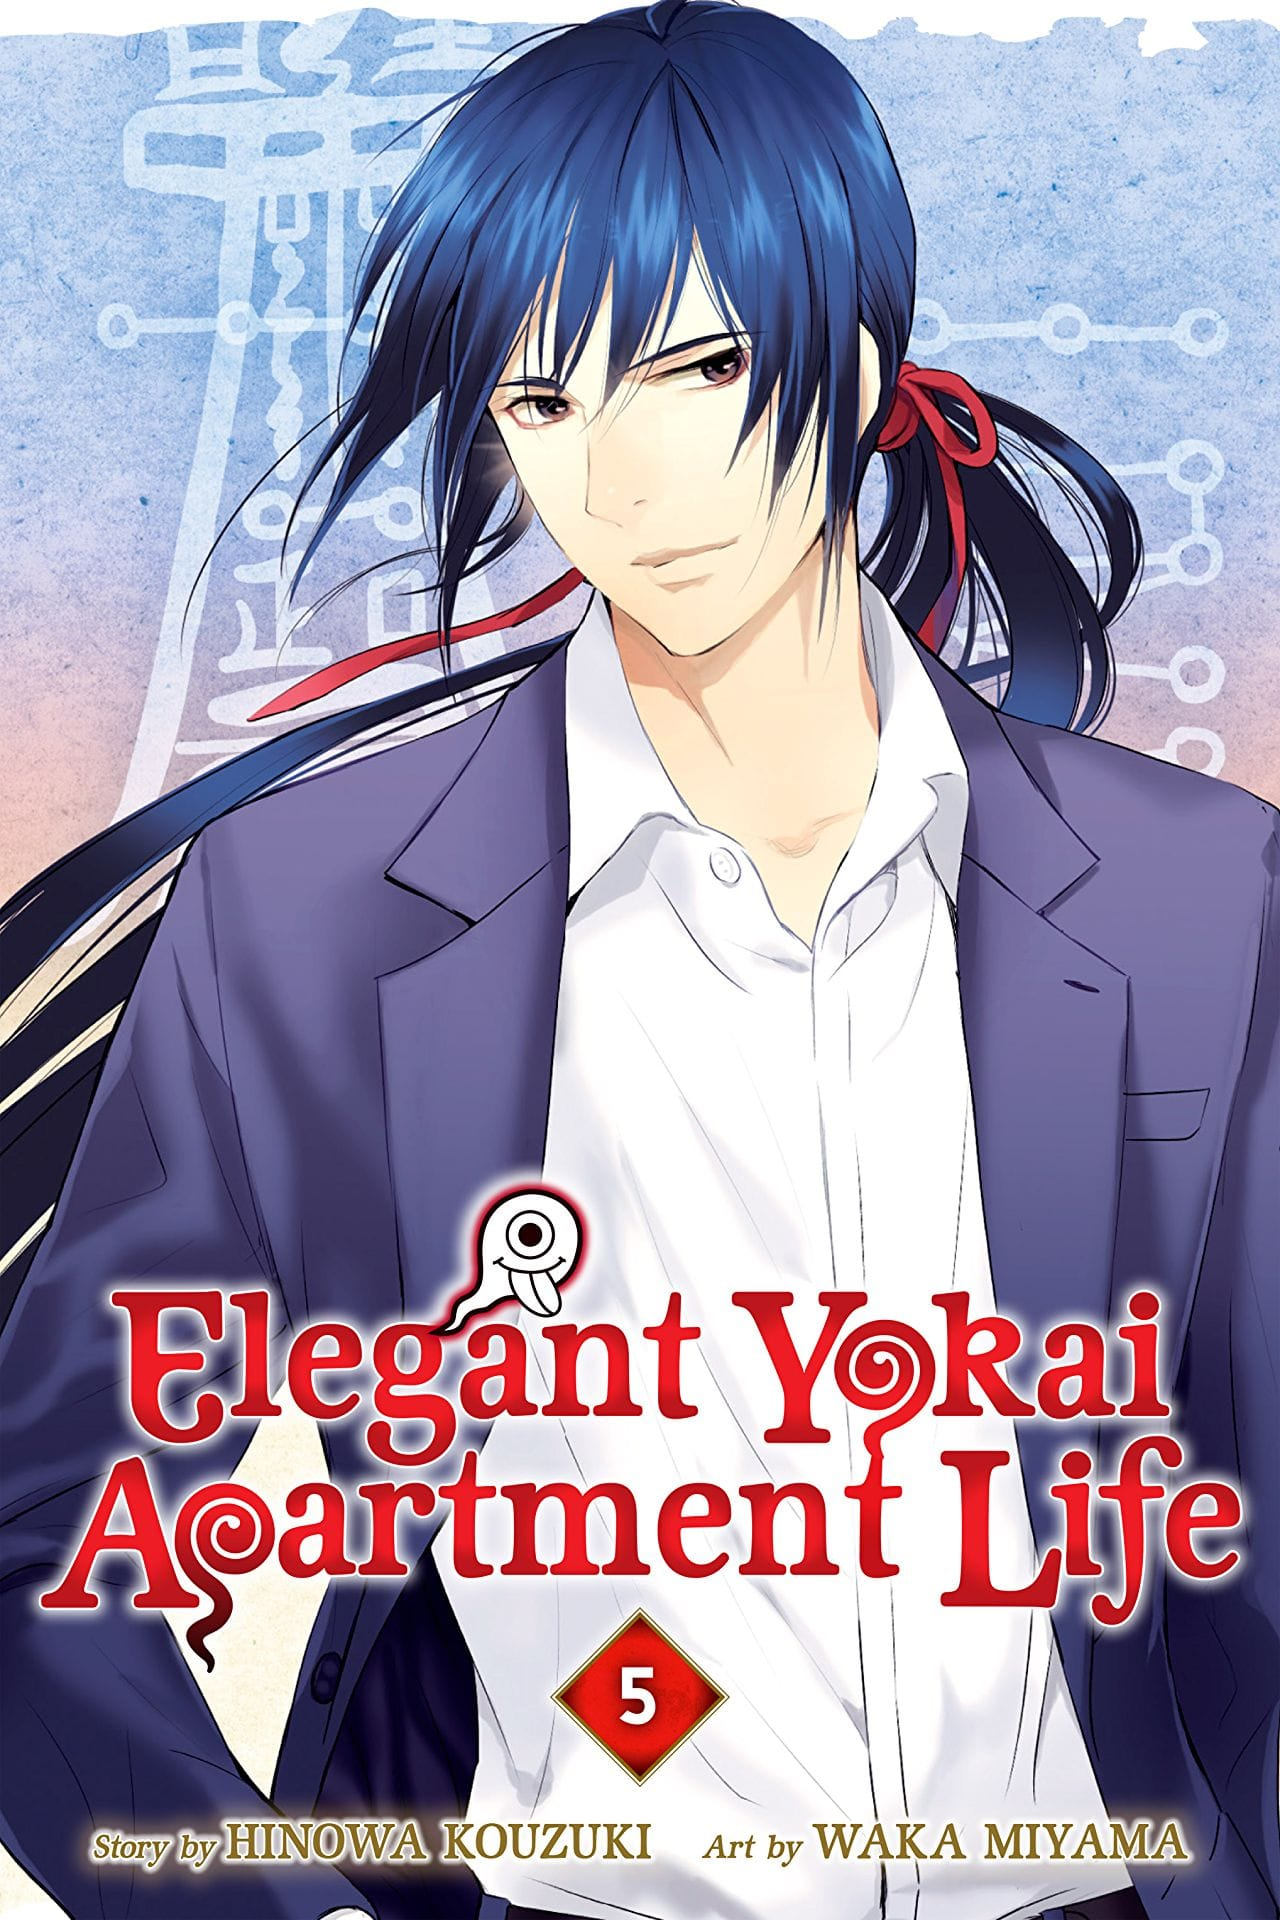 Elegant Yokai Apartment Life Vol. 5 Review